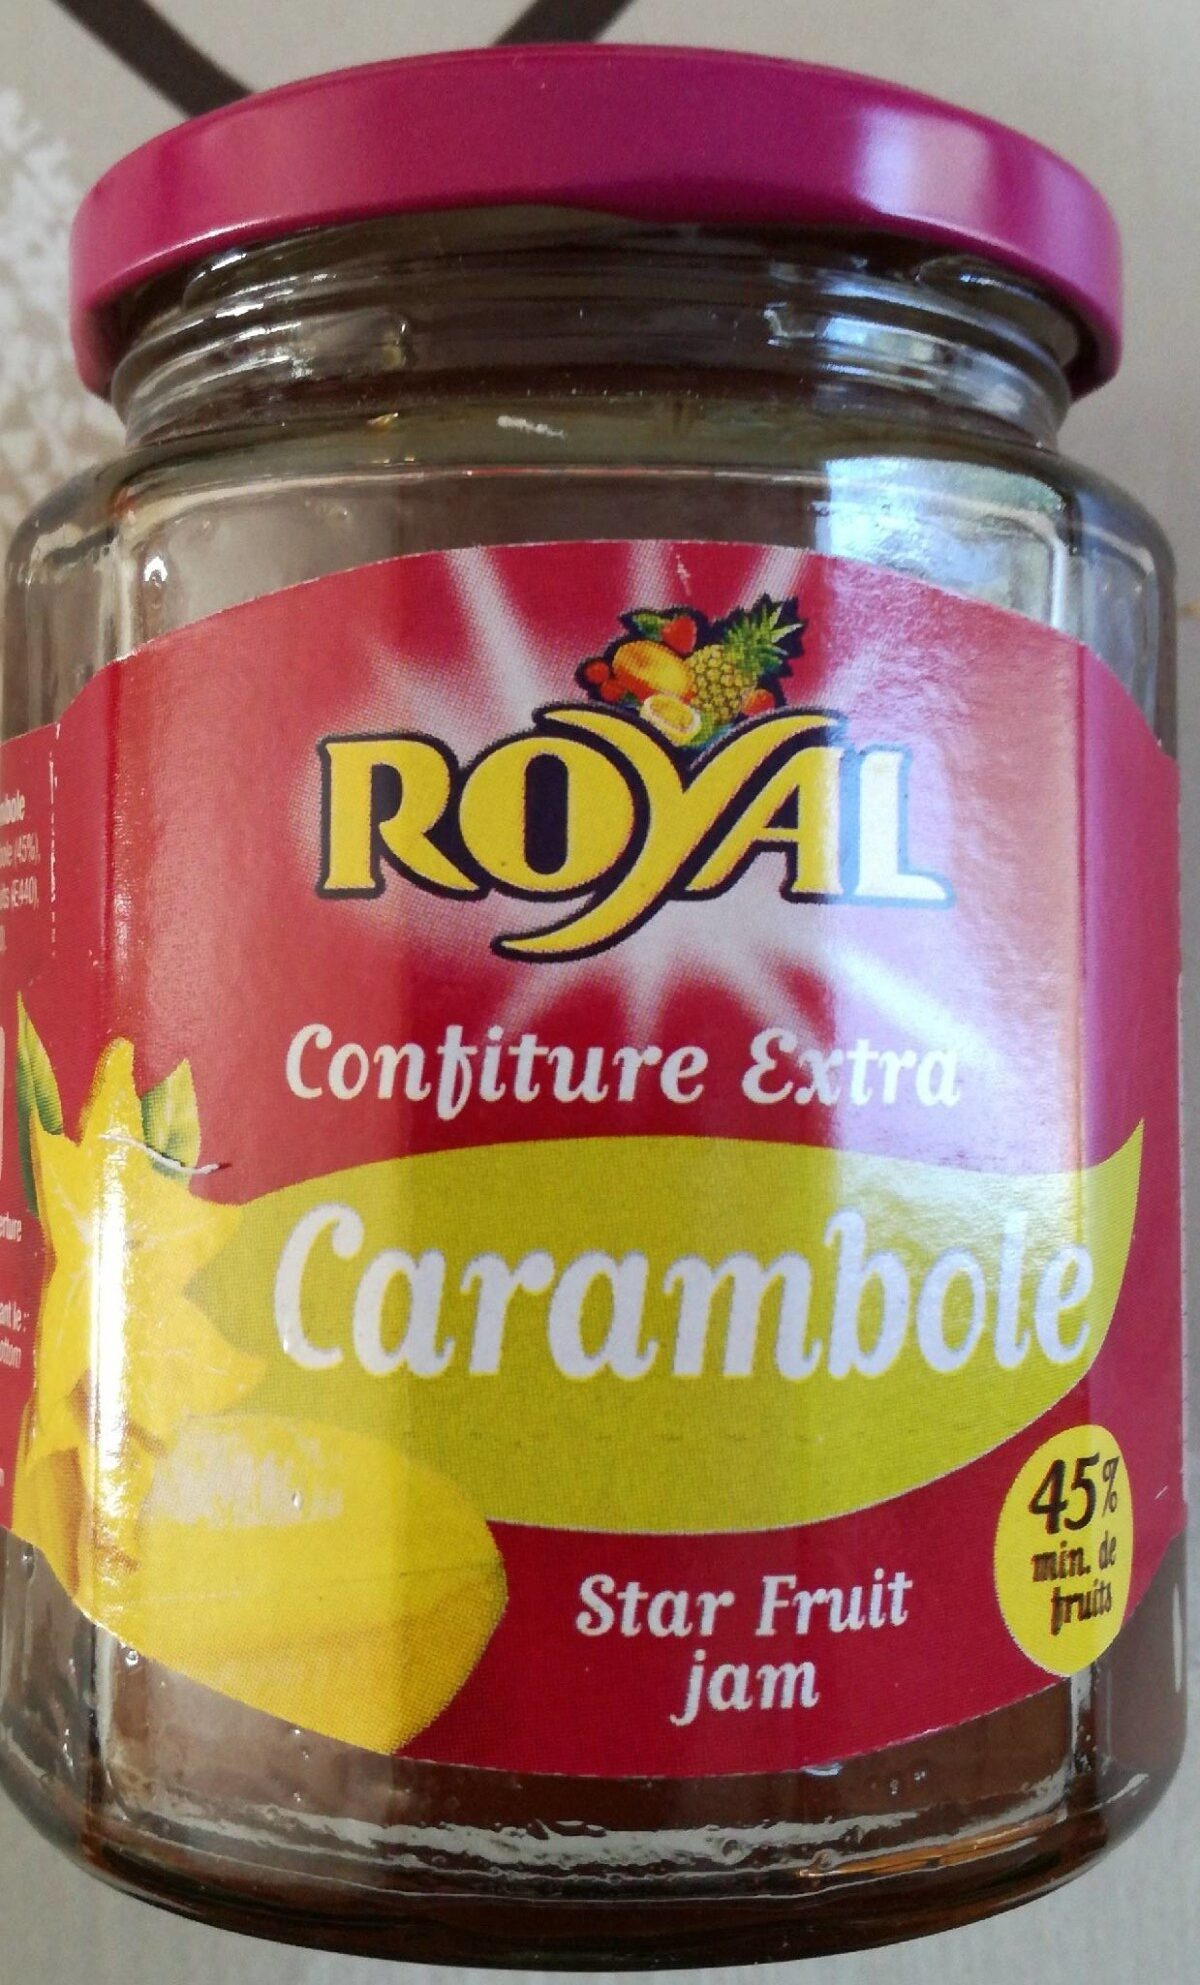 Confiture extra Carambole - Product - fr